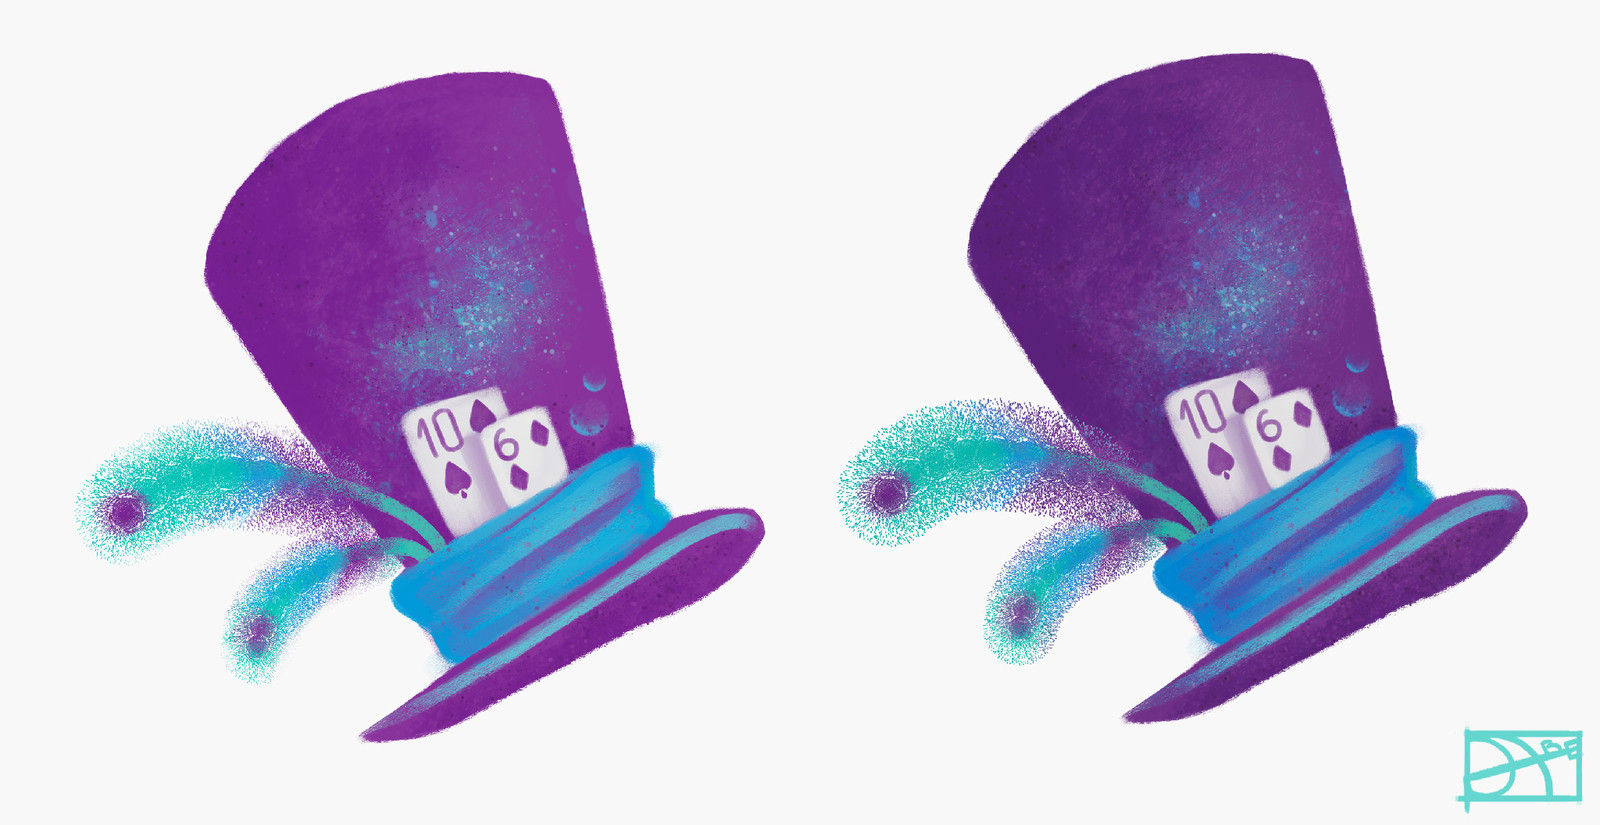 Two versions of hat (inspired by Mad Hatter from Alice in Wonderland)